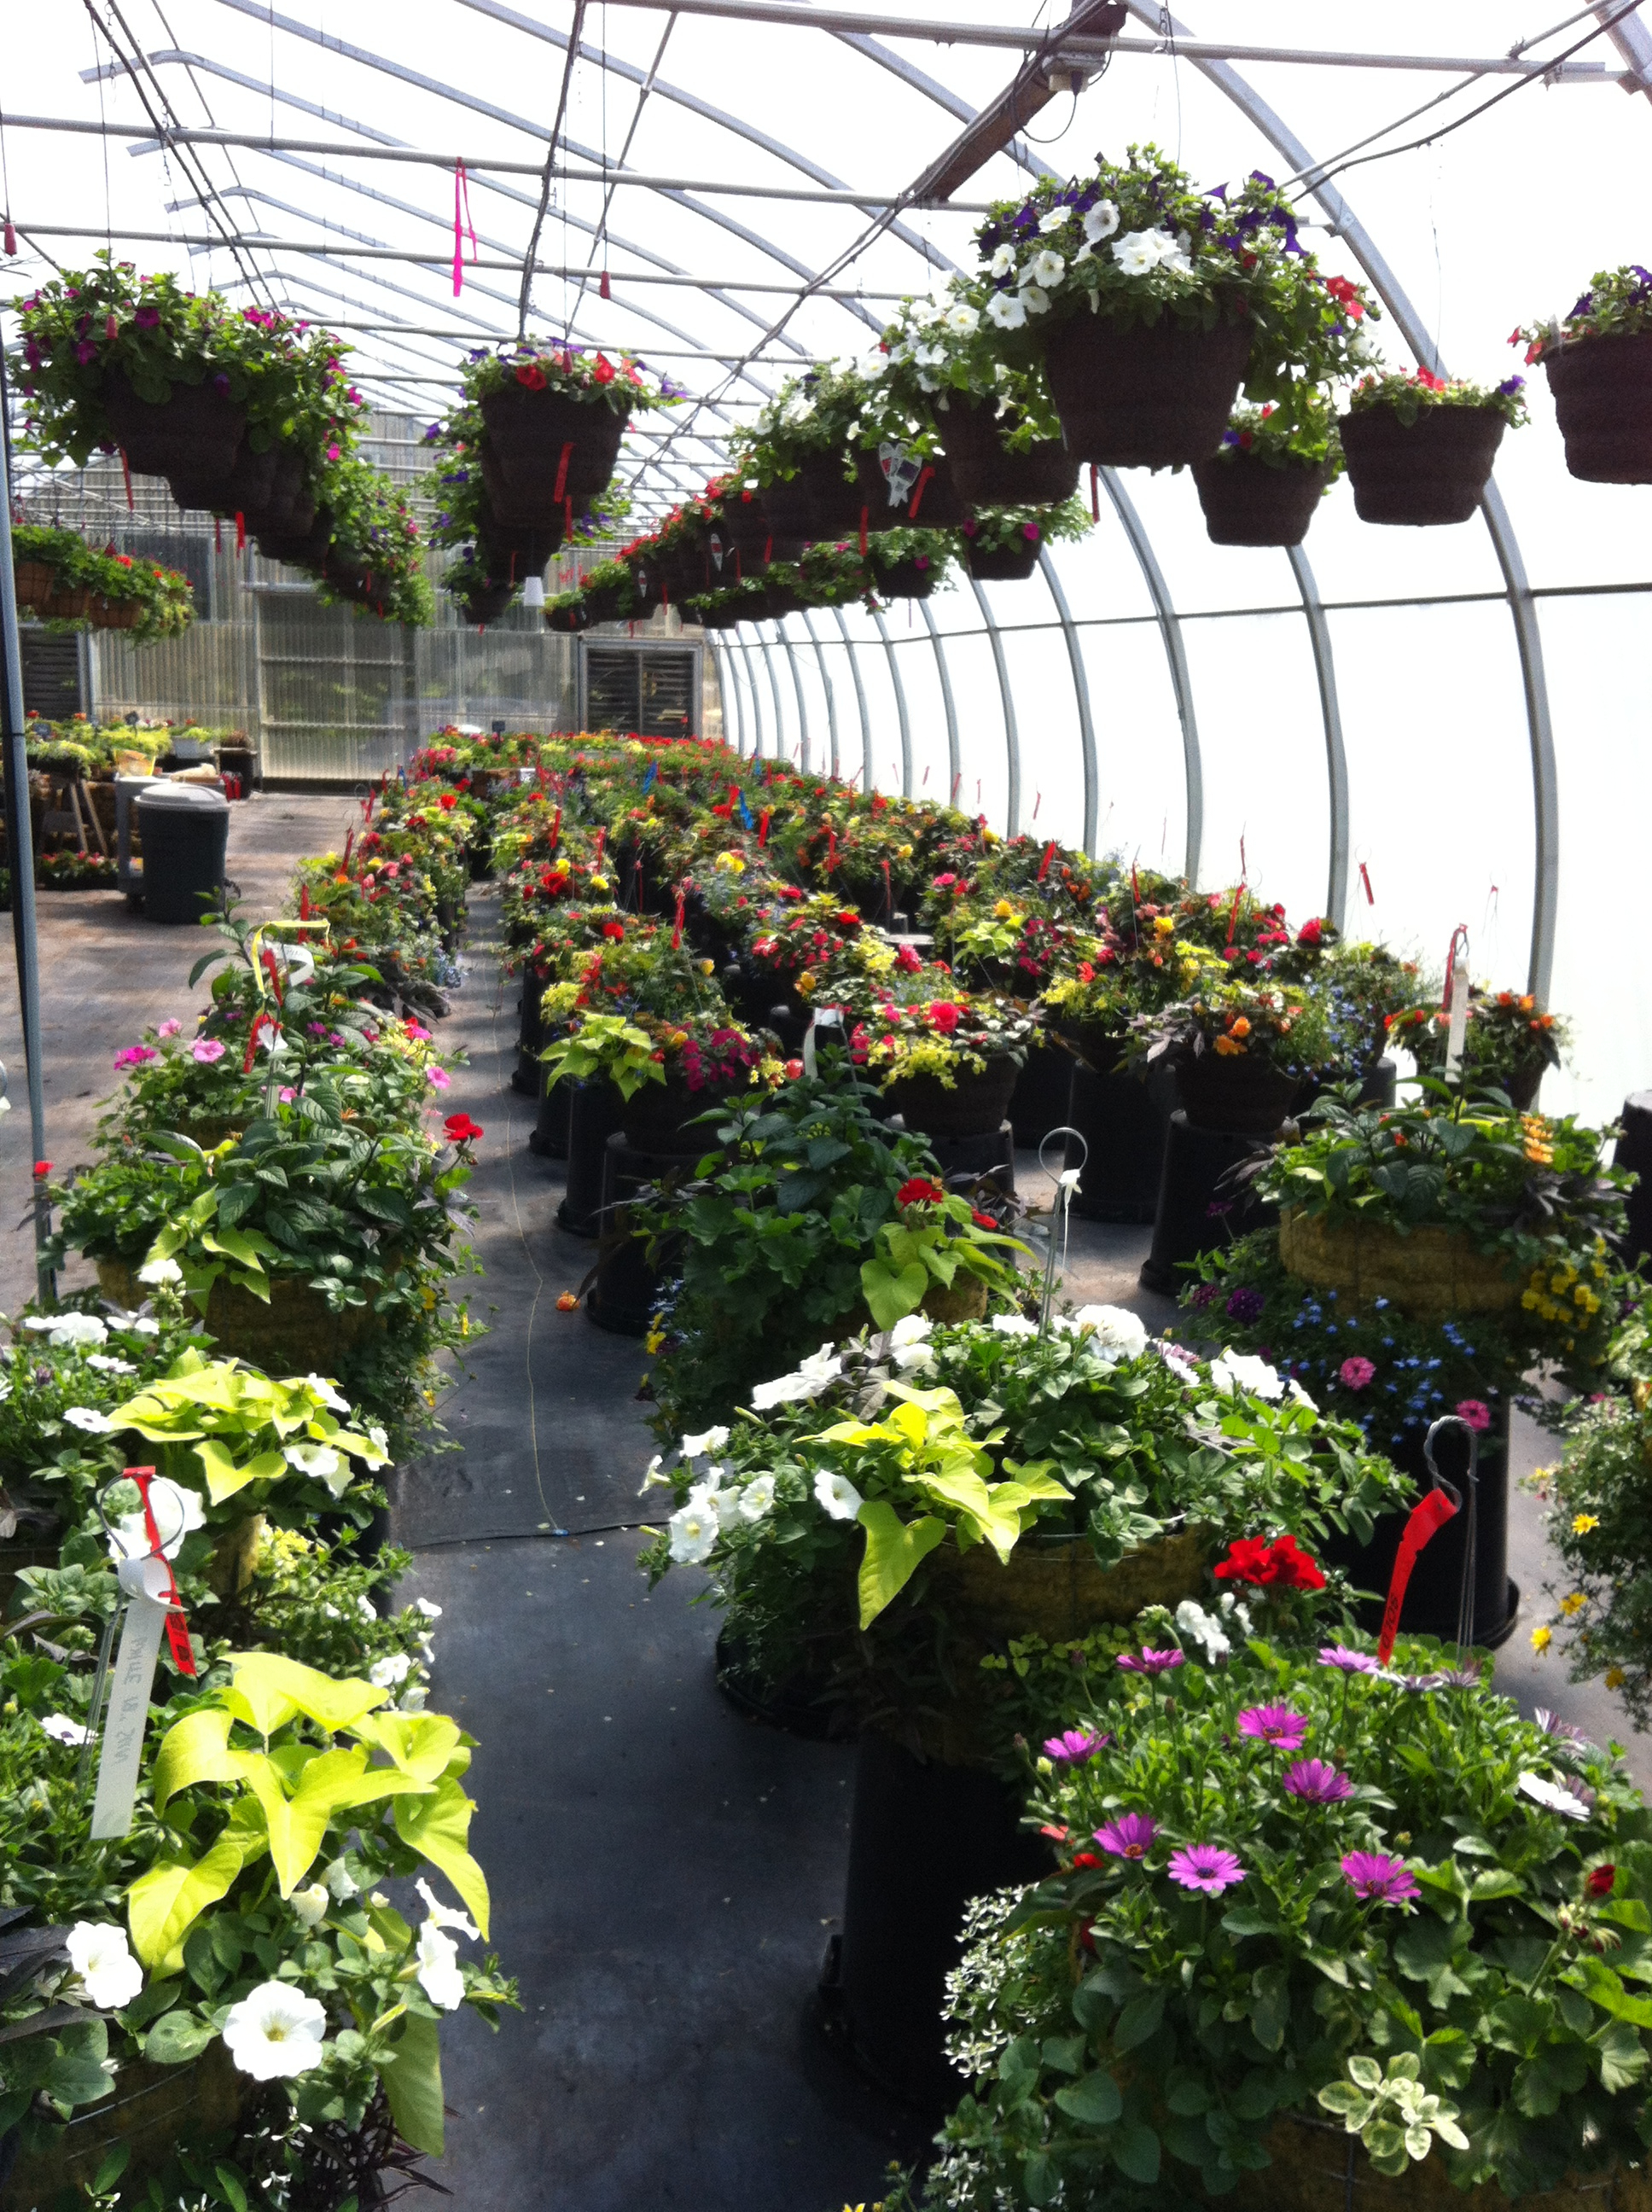 Flower Farm_Greenhouse5.jpg